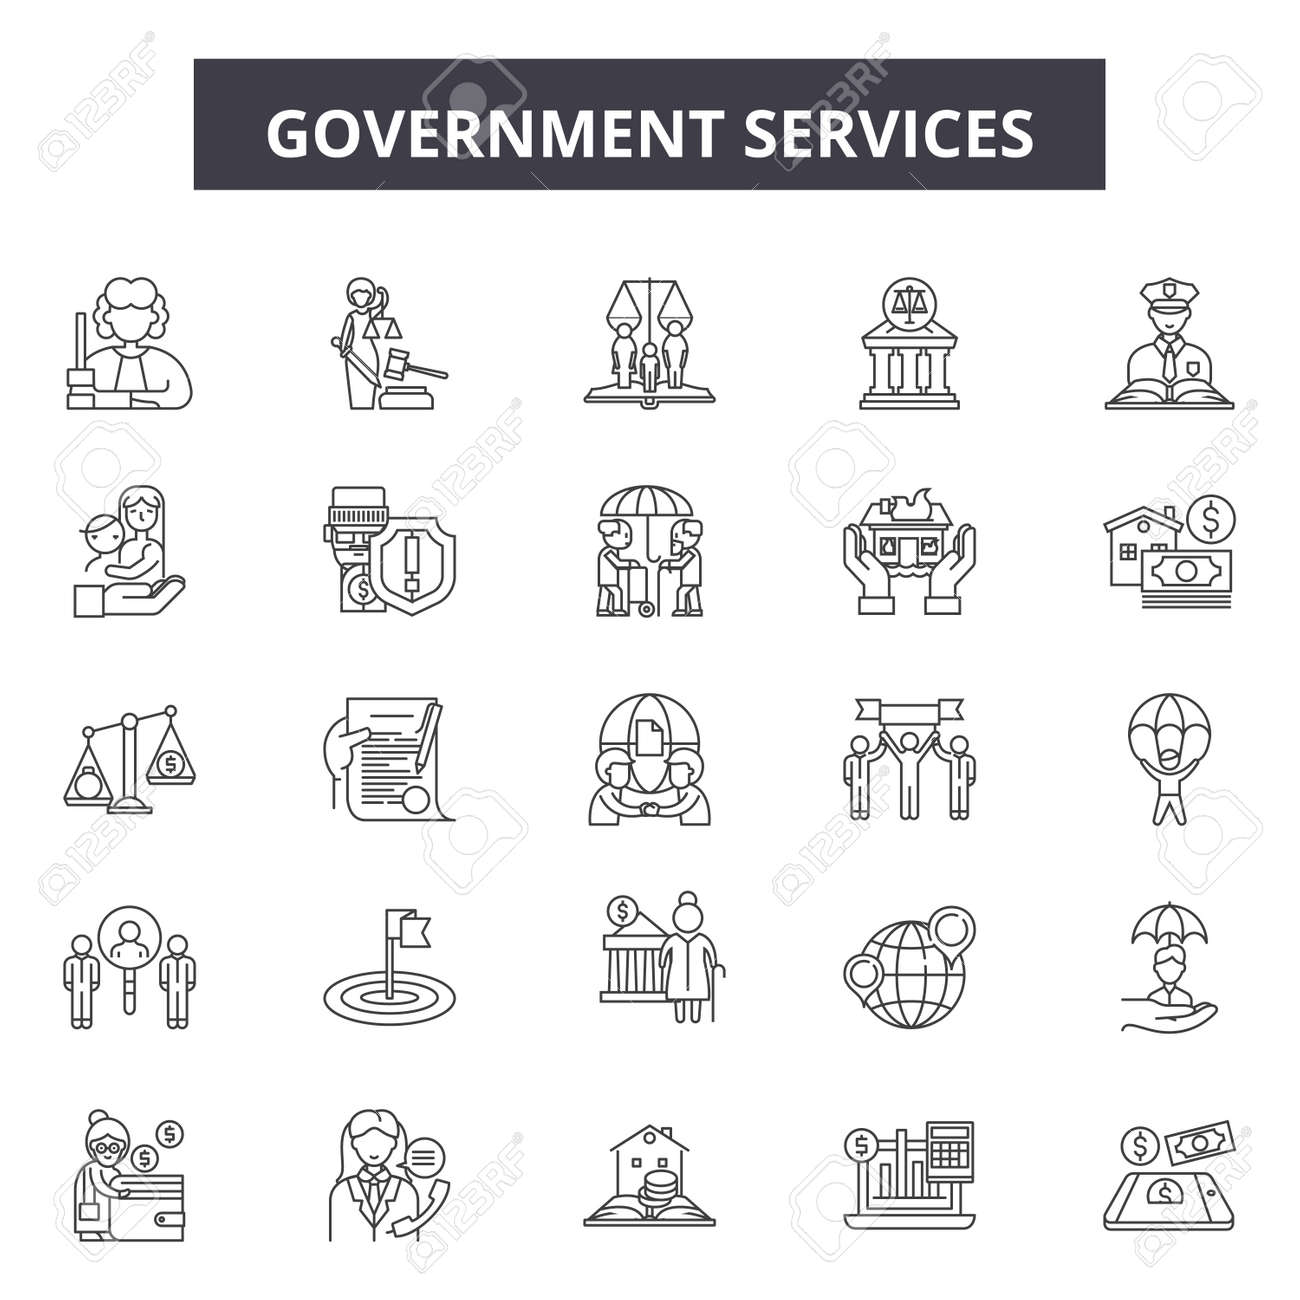 Government services line icons, signs set, vector. Government services outline concept illustration: government,service,business,education,administration,money - 123582071